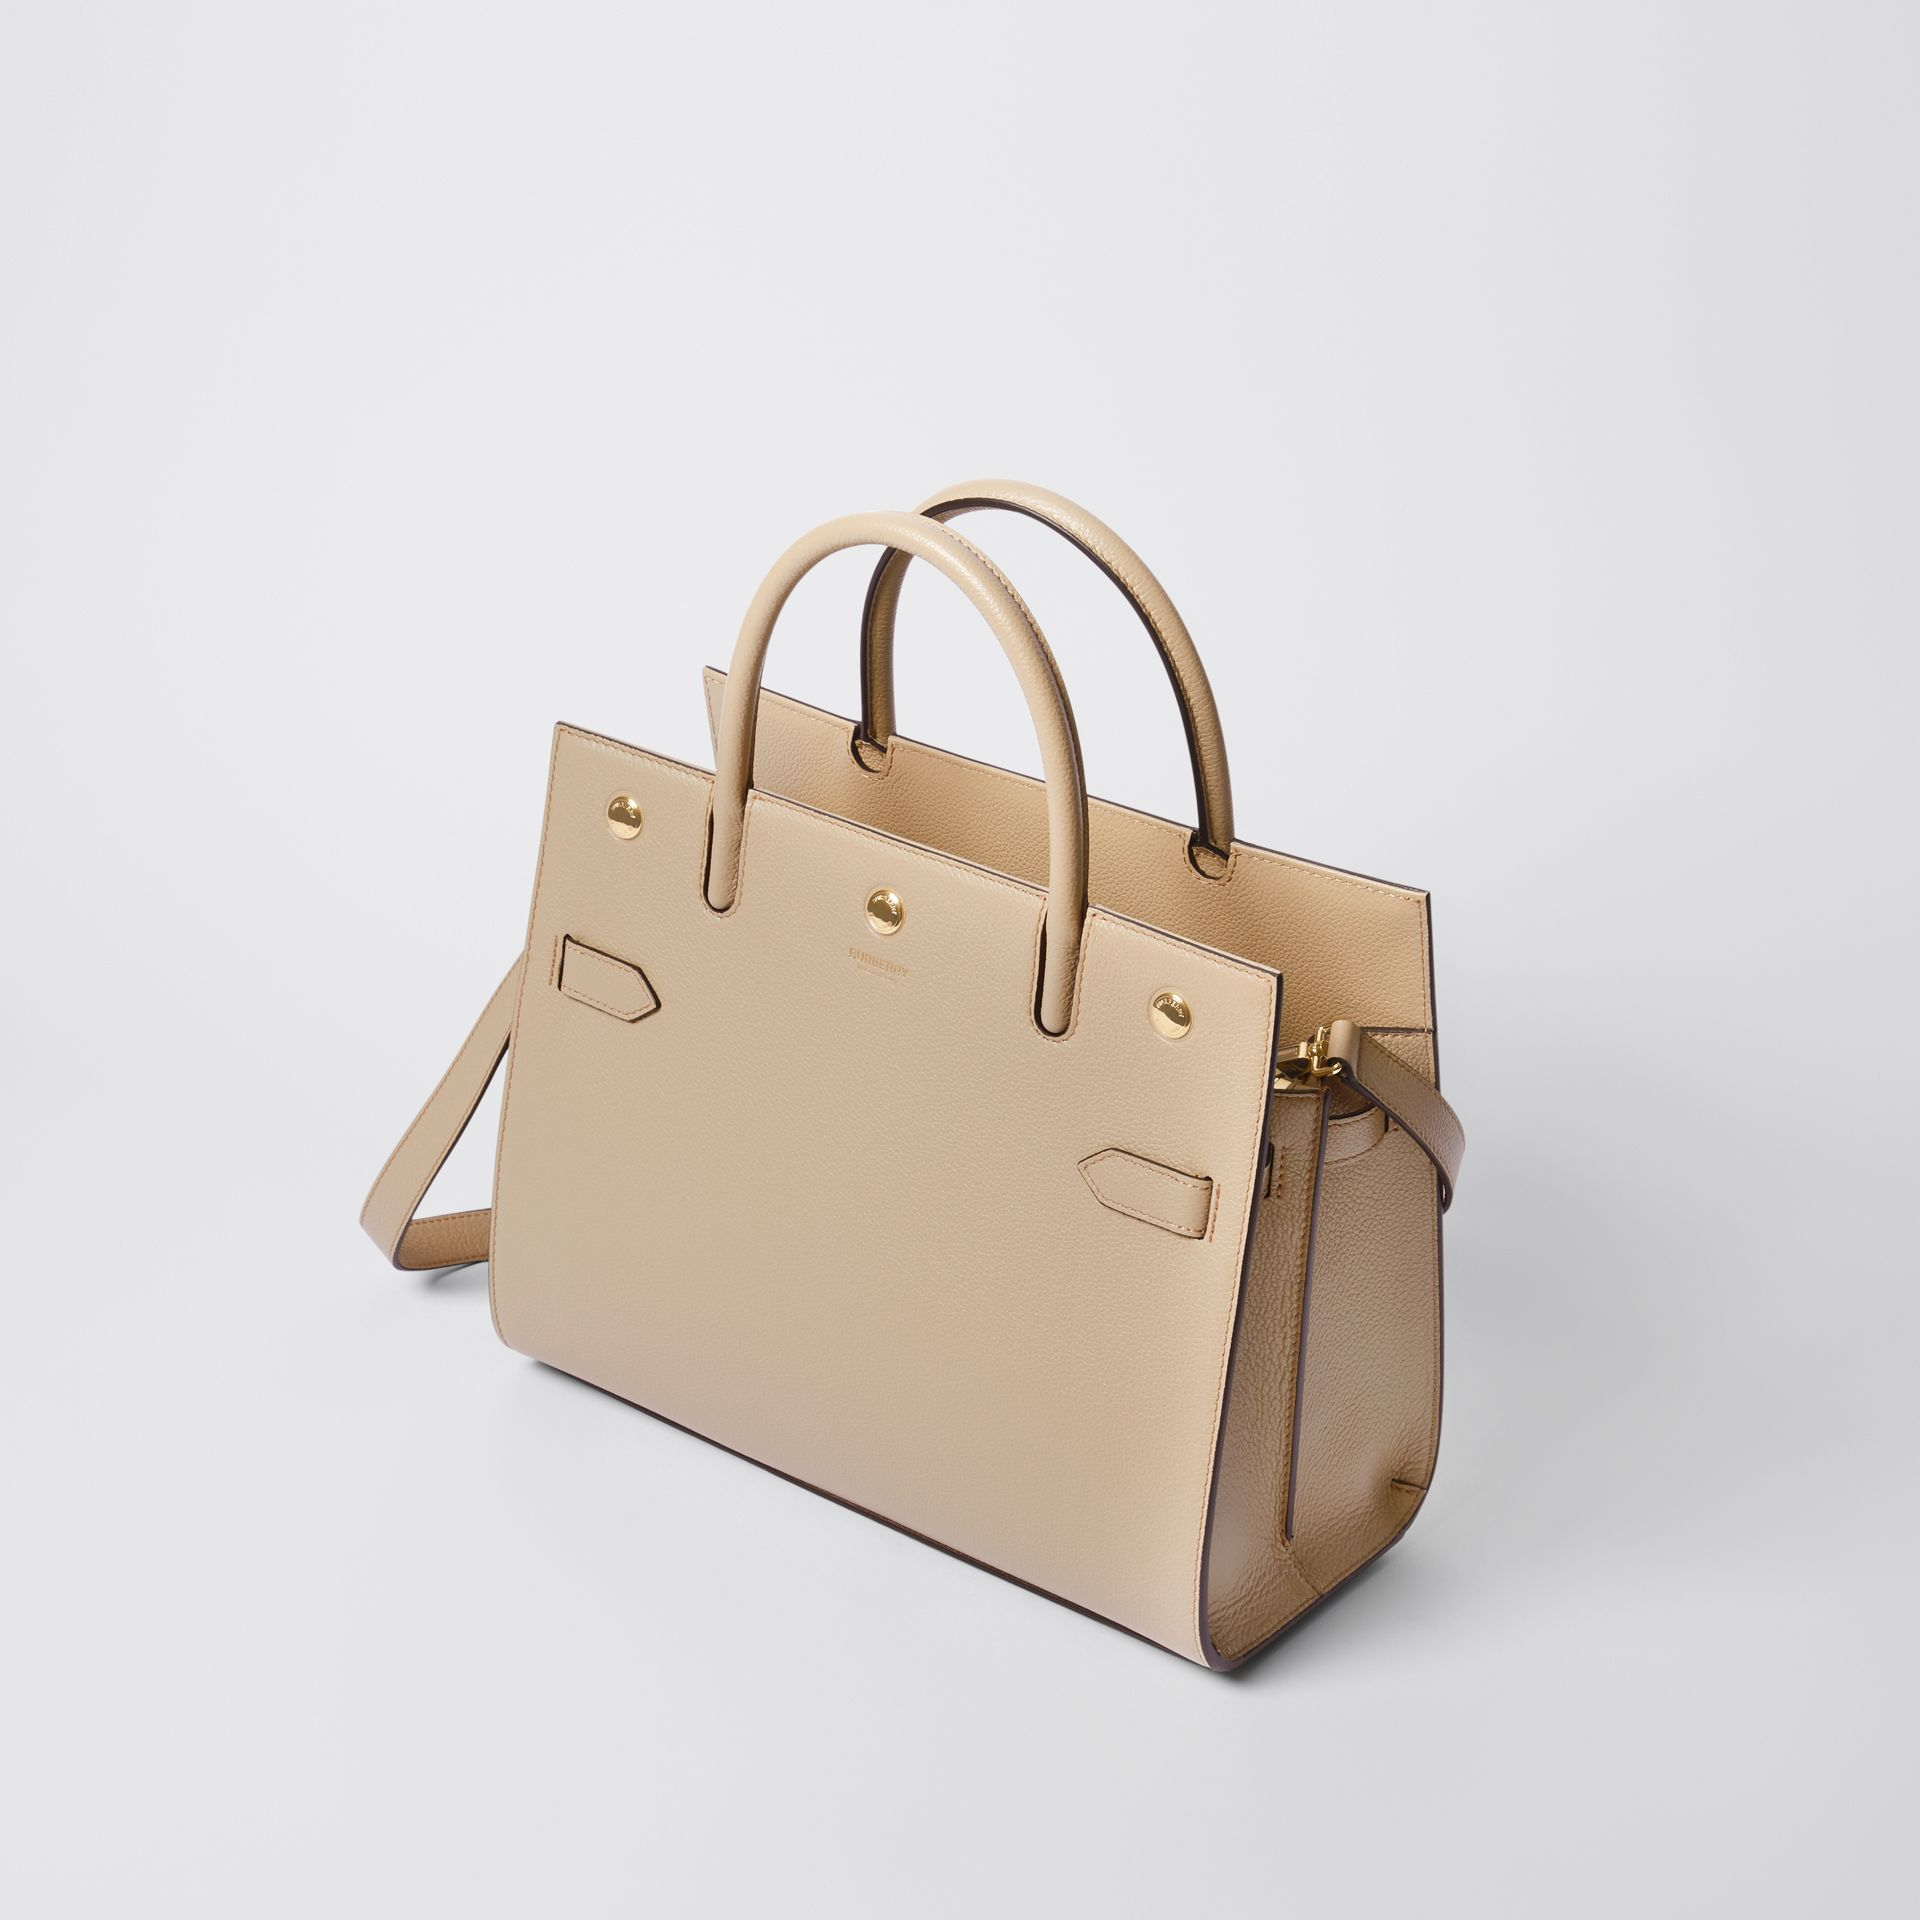 Small Leather Two-handle Title Bag in Light Beige - Women | Burberry - gallery image 3